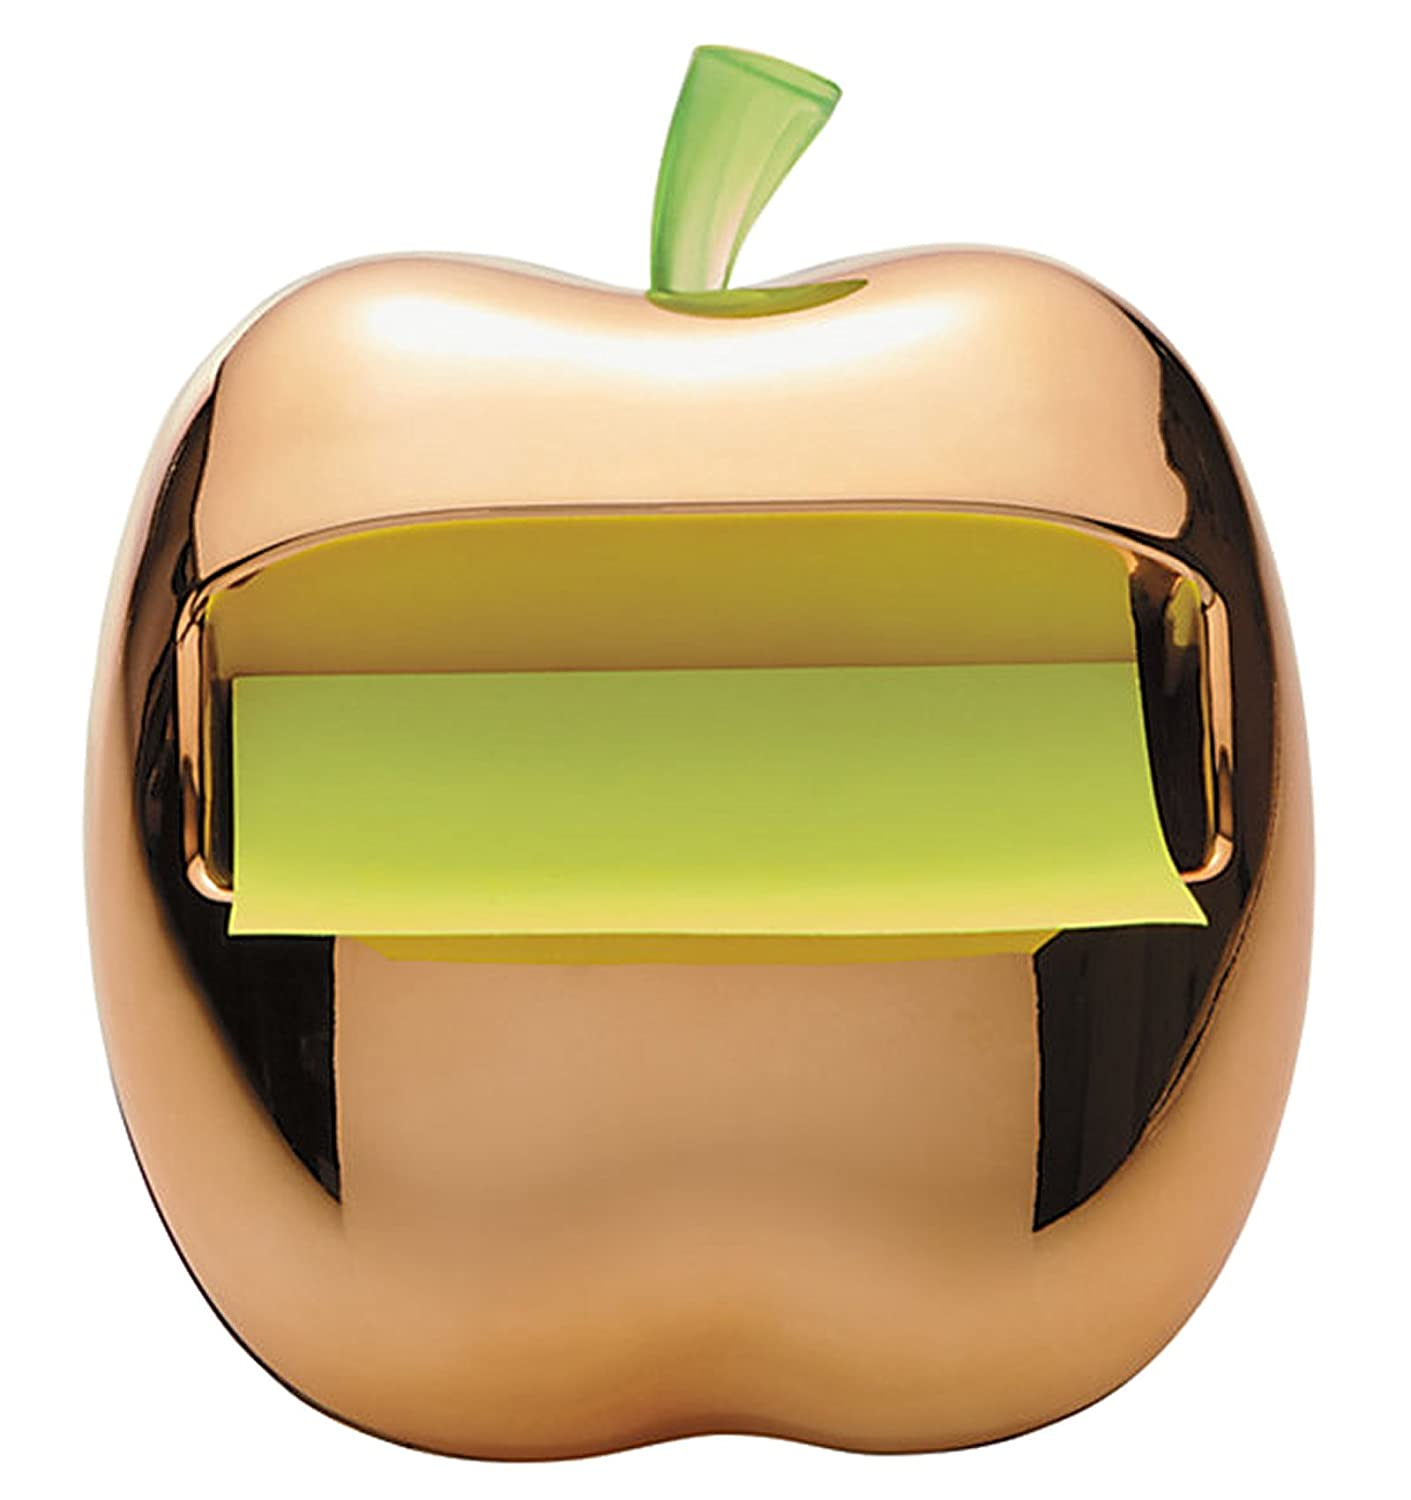 Amazon.com : Post-It Gold Apple Pop-Up Note Dispenser for 3 x 3-Inch Notes, Includes 1 Can... : Office Products